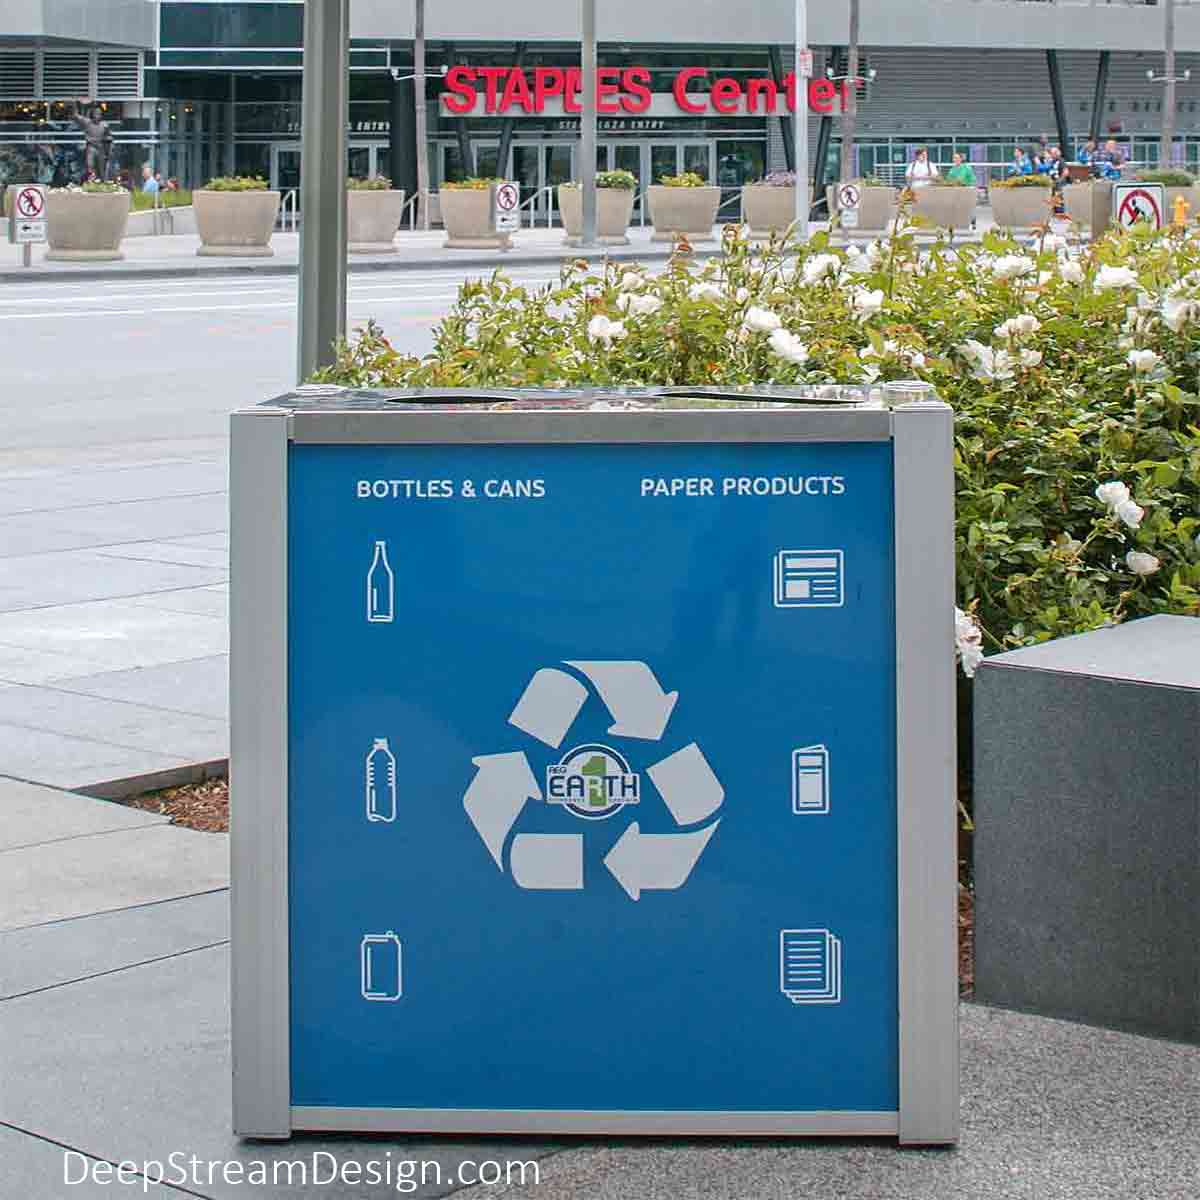 DeepStream Audubon dual-stream Commercial Combined Recycling and Trash Receptacles crafted with quick change advertising panels for Earth Day at the Staples Center in downtown Los Angeles.